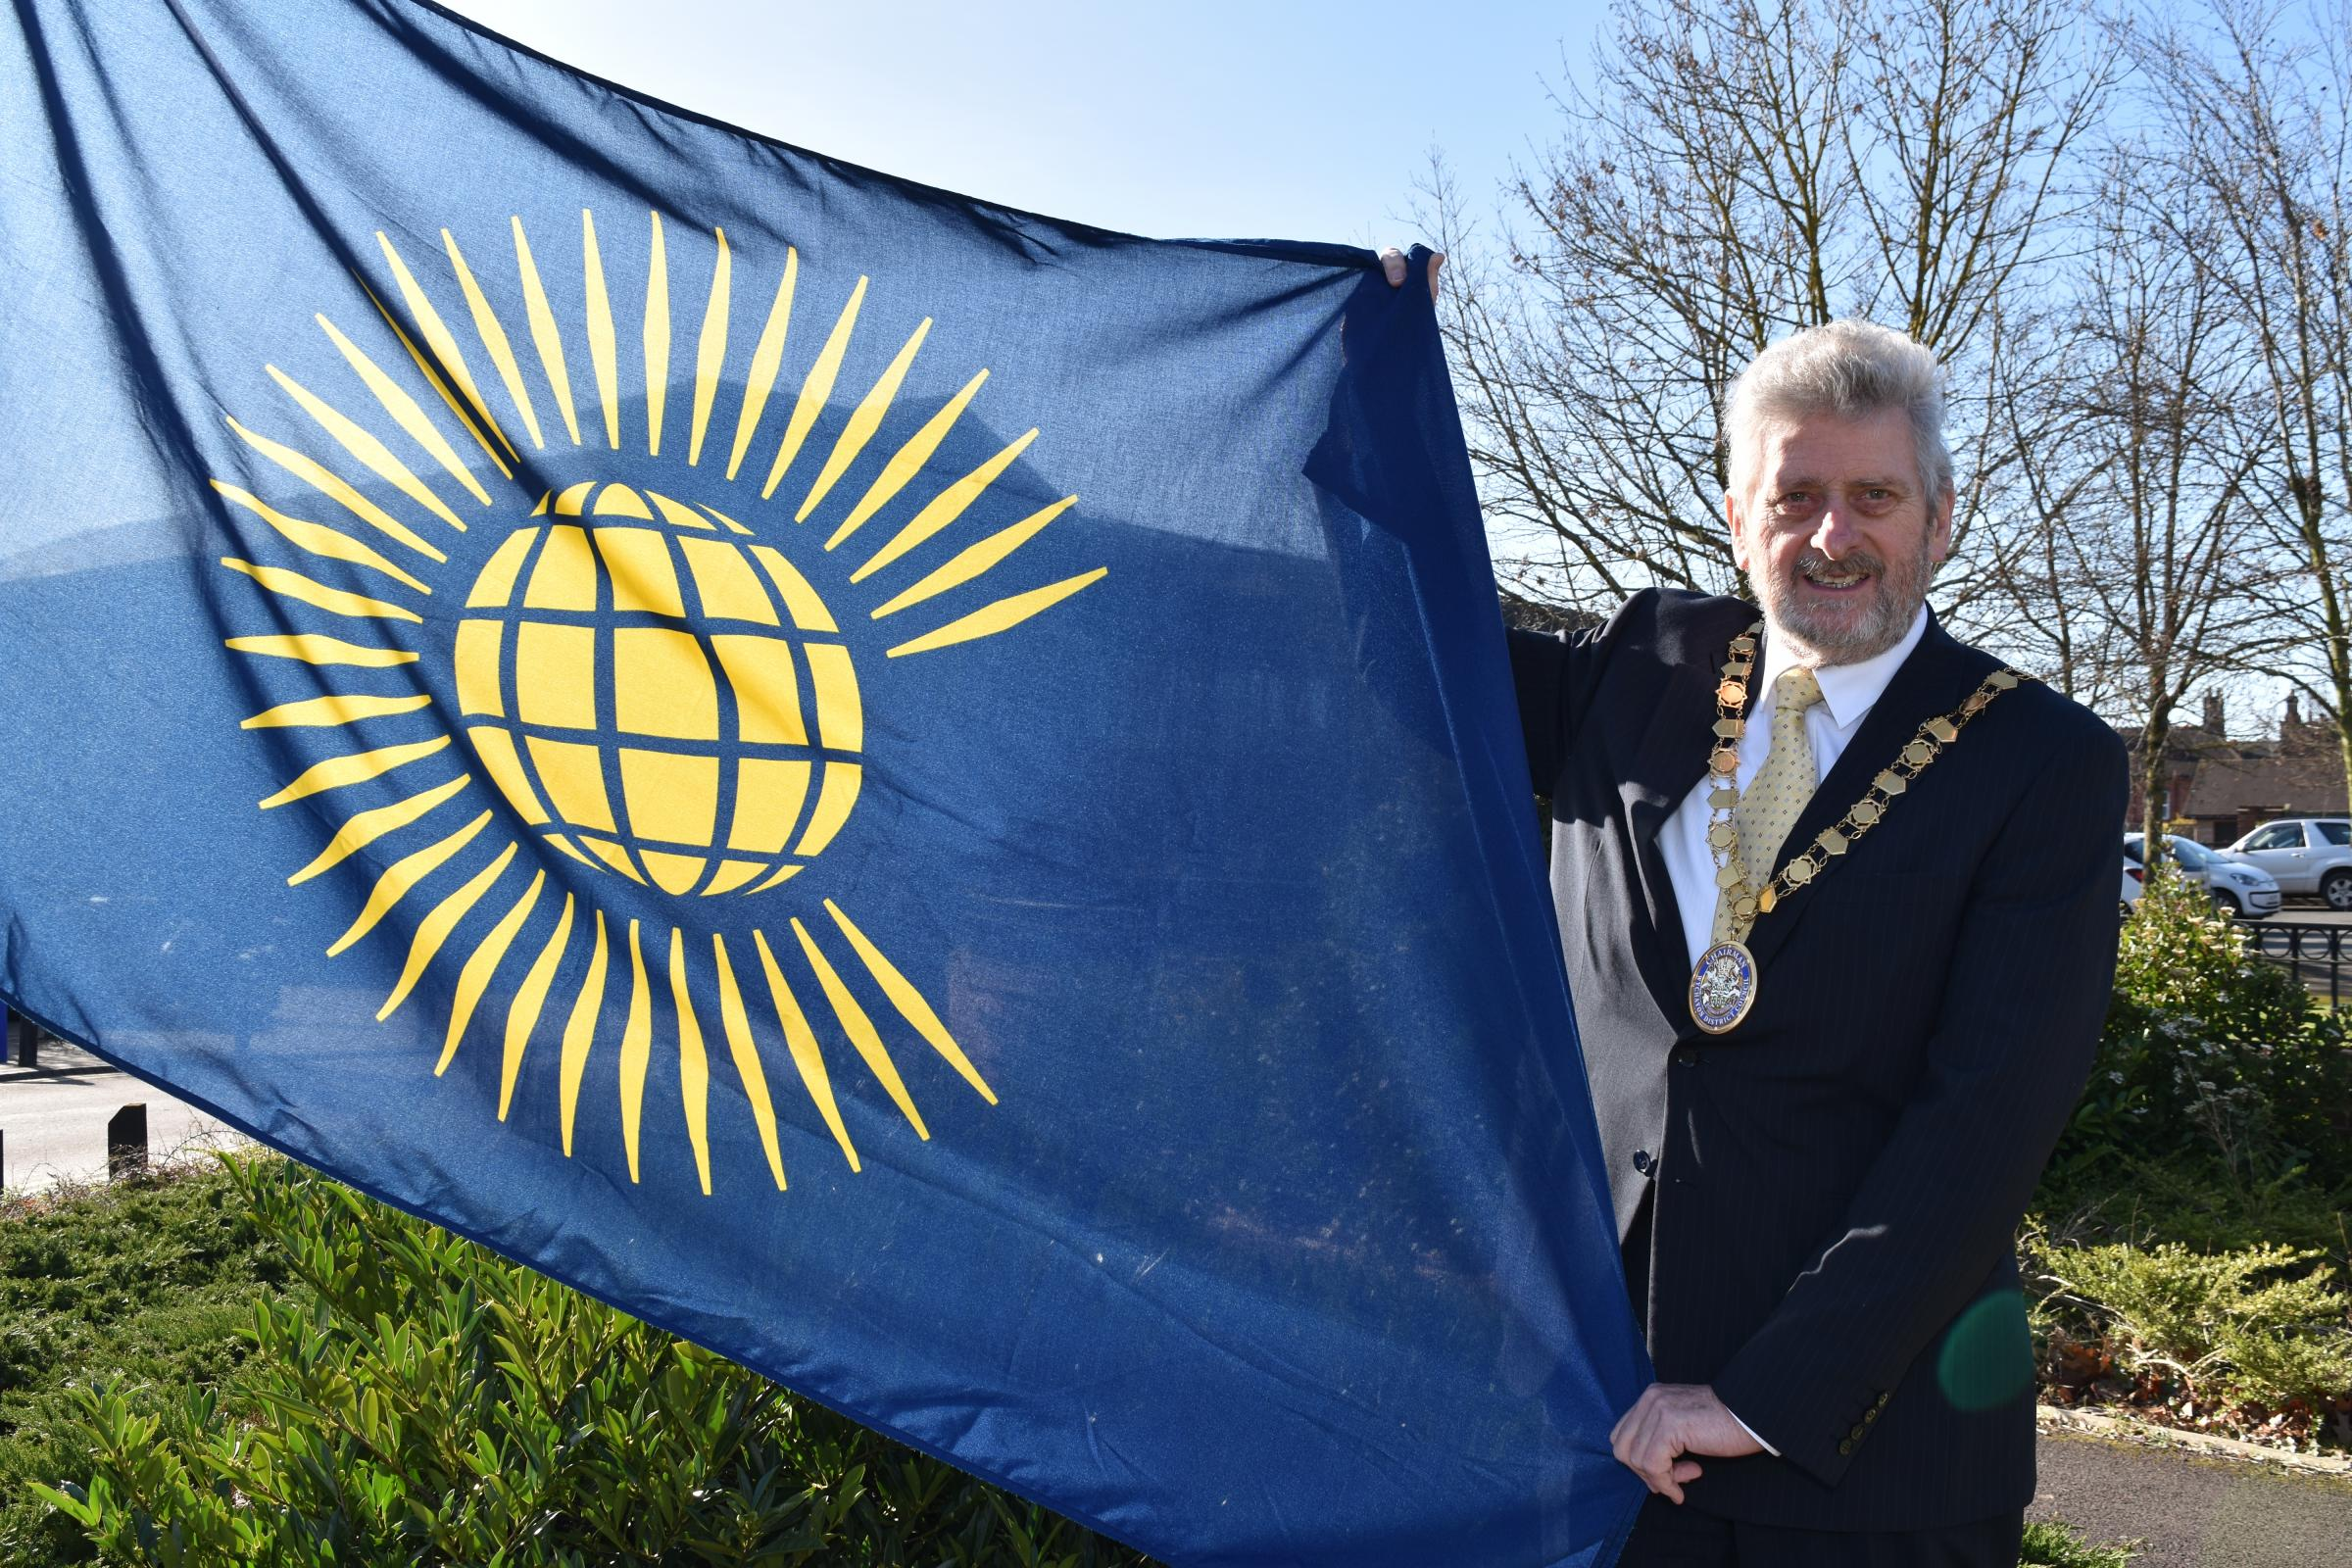 Cllr Tony Rowley, chairman of Wychavon District Council, flying the Commonwealth Flag outside the Civic Centre in Pershore